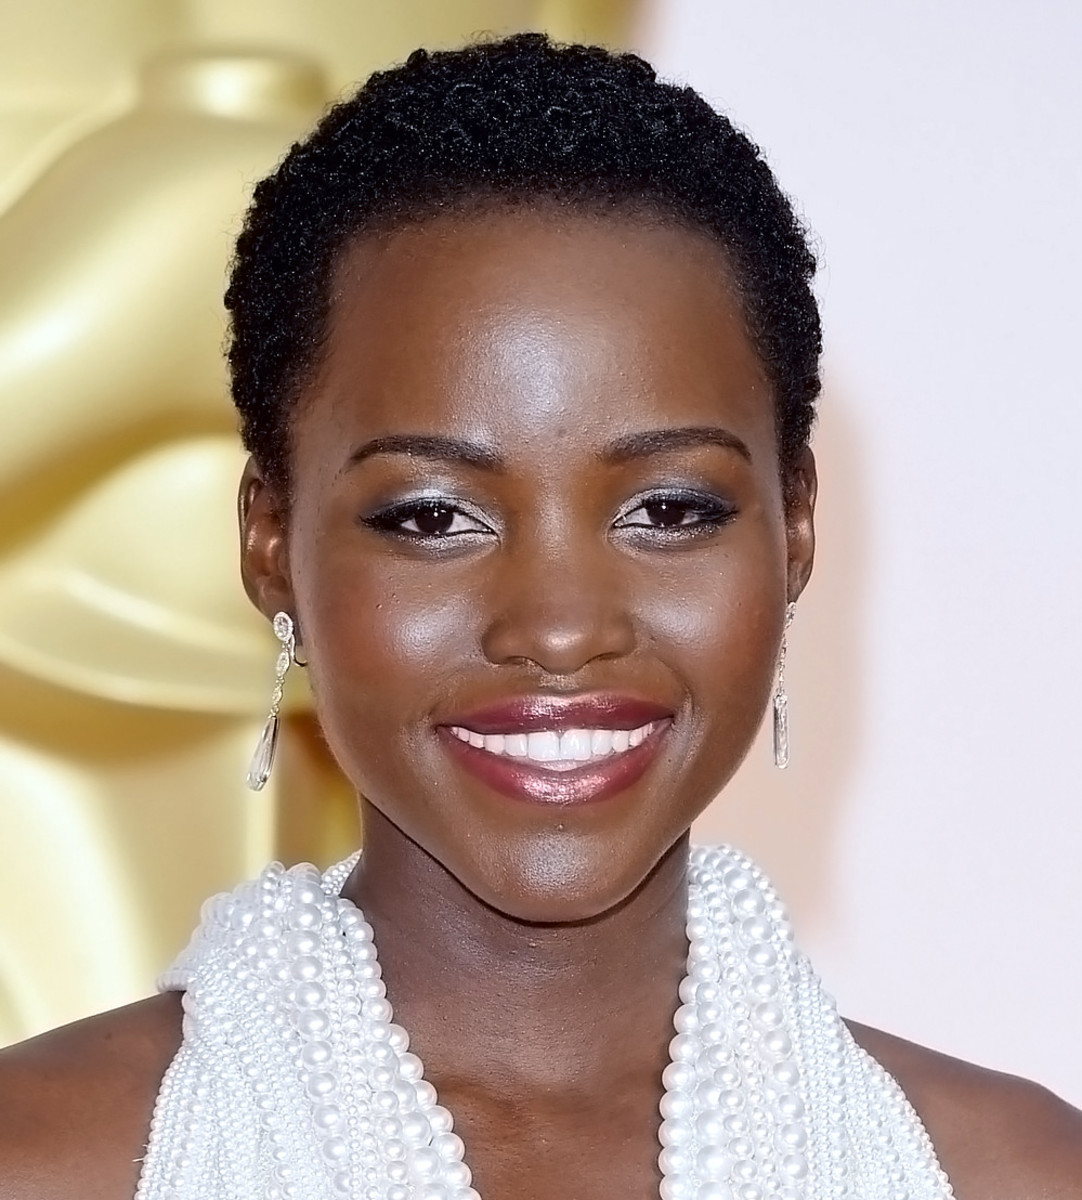 Lupita Nyong'o 2015 Oscars makeup by Nick Barose and Lancome